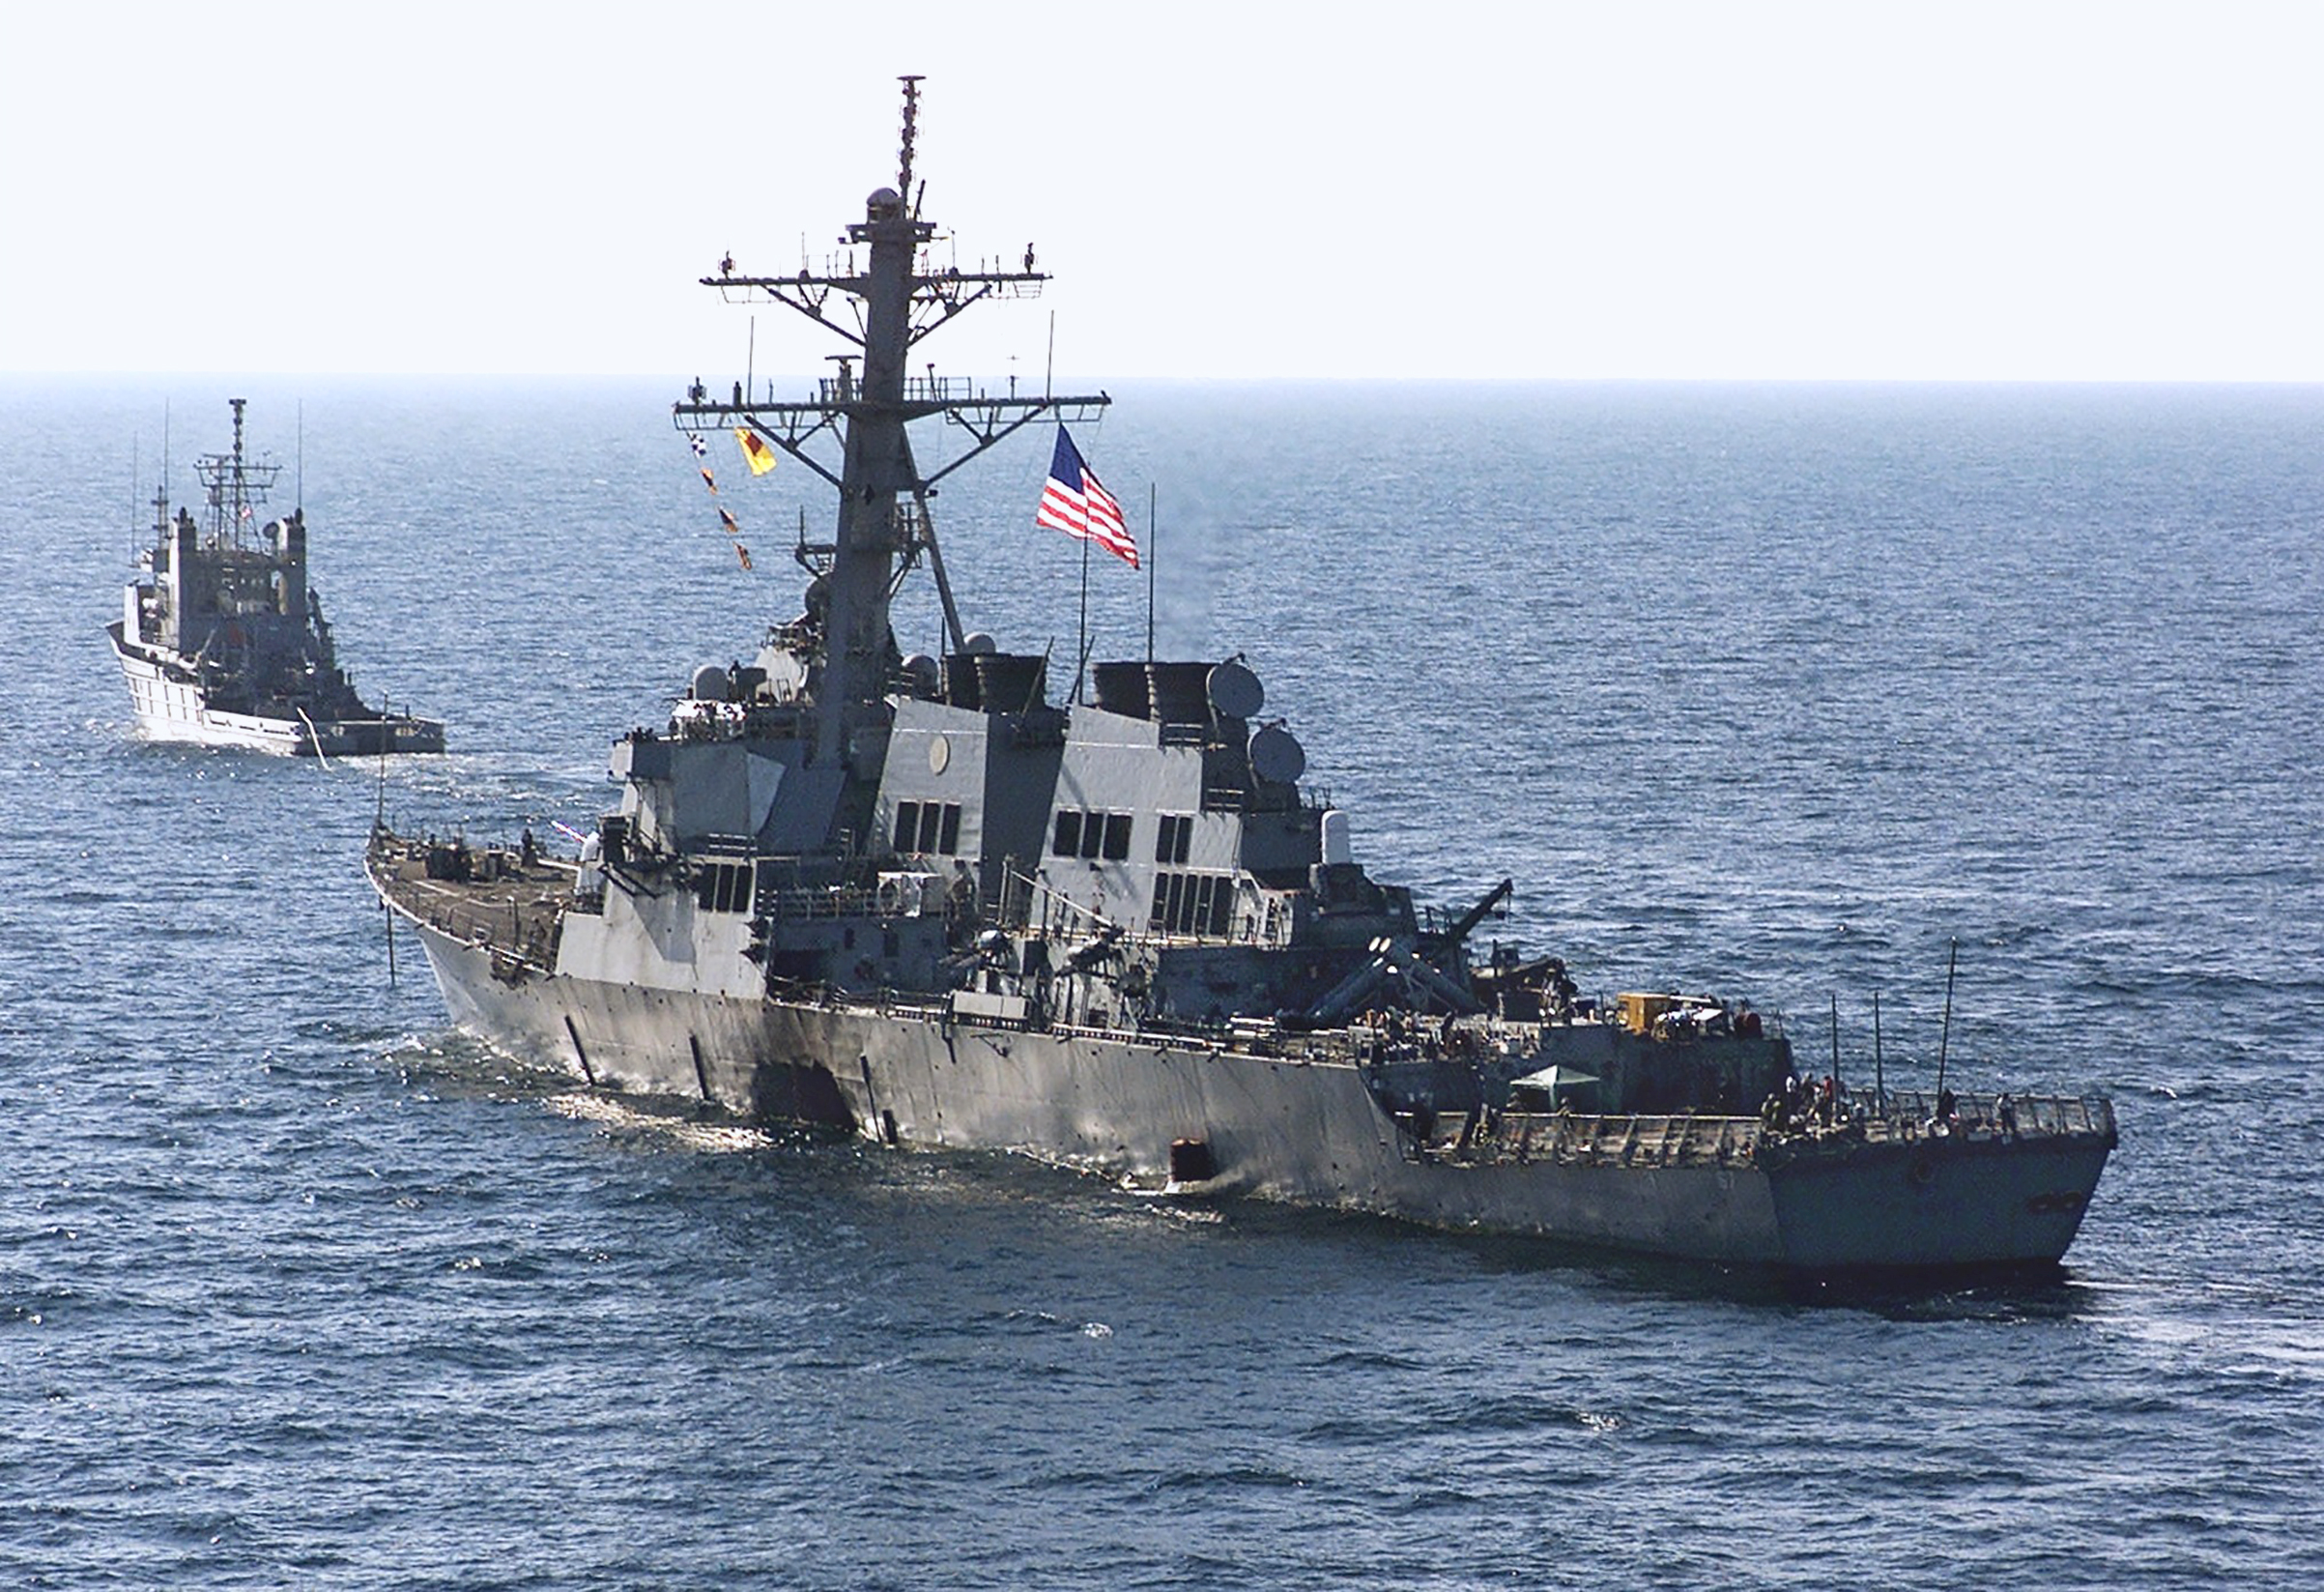 The U.S.S. Cole was attacked in Yemen on Oct. 12, 2000